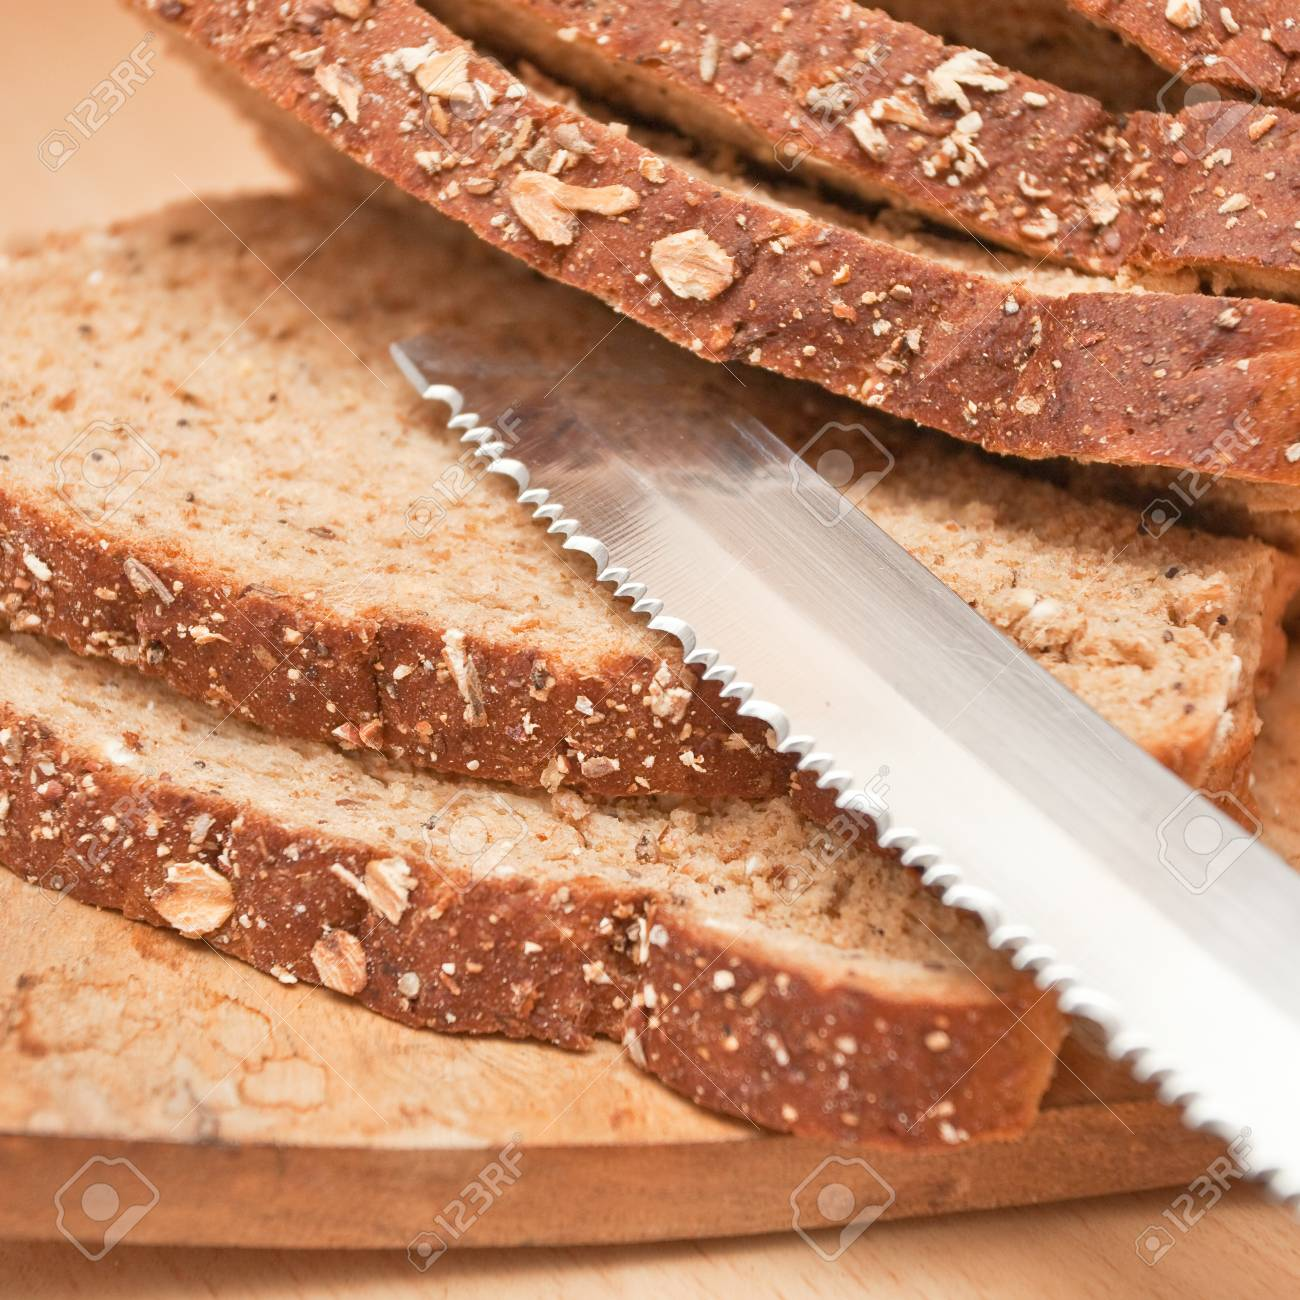 Sliced wholemeal bread and a bread knife on a wooden board Stock Photo - 11236241